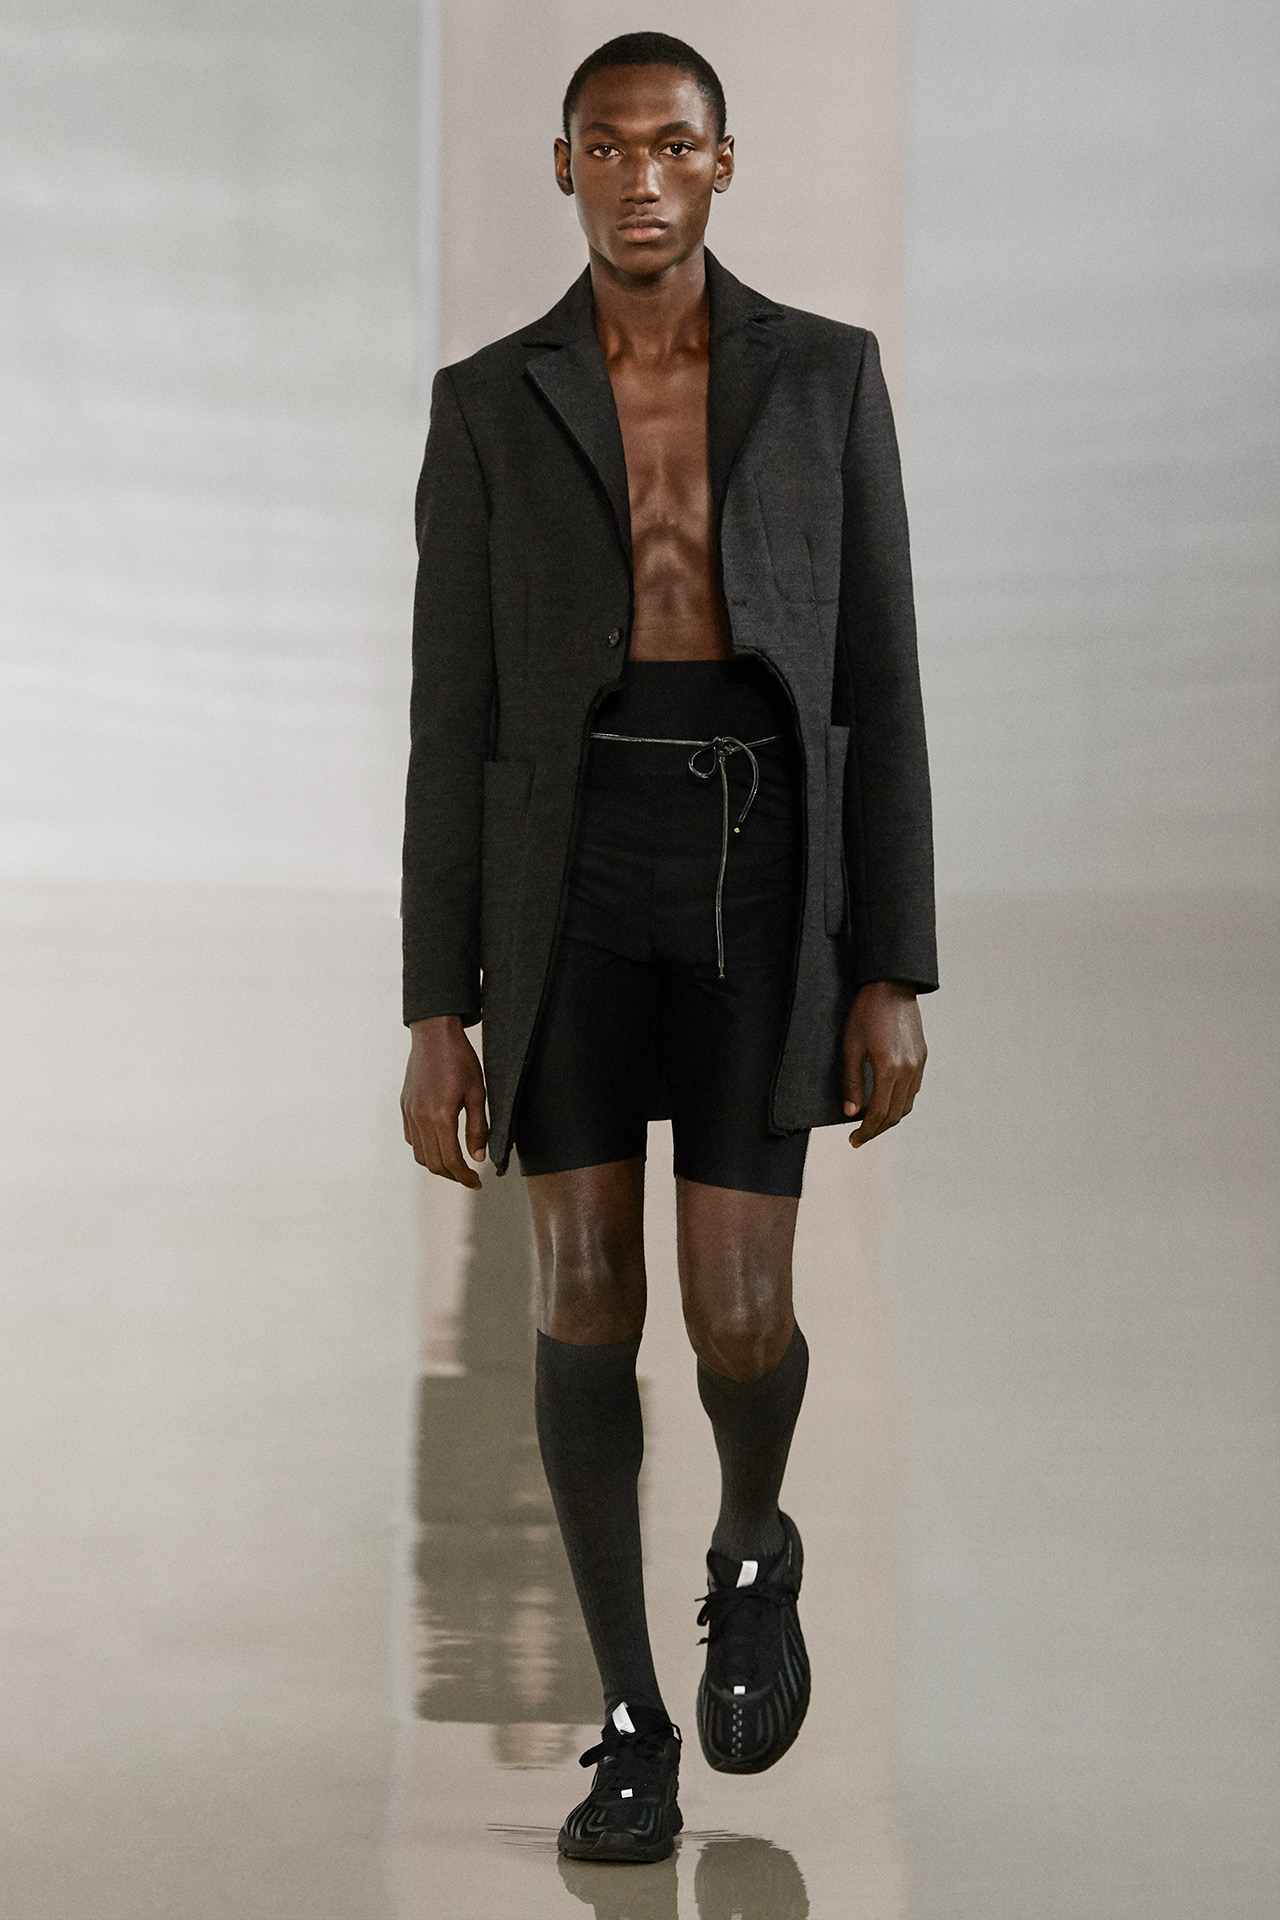 Look Fall/Winter 2020, image 17